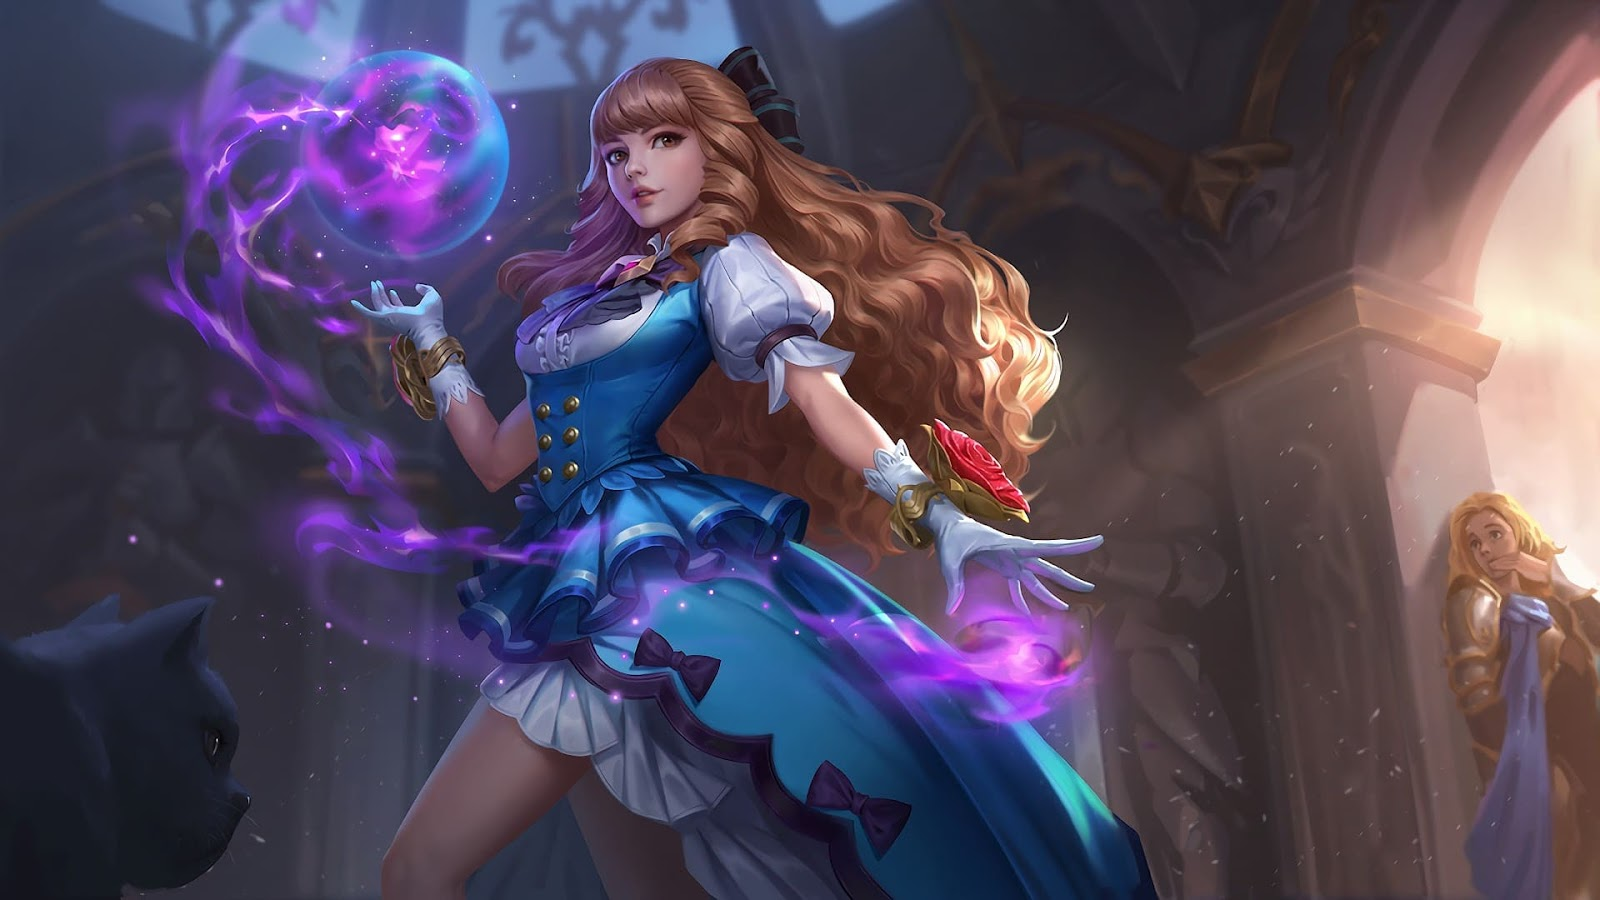 Wallpaper Guinevere Fleur de Bleau Skin Mobile Legends Skin Mobile Legends HD for PC